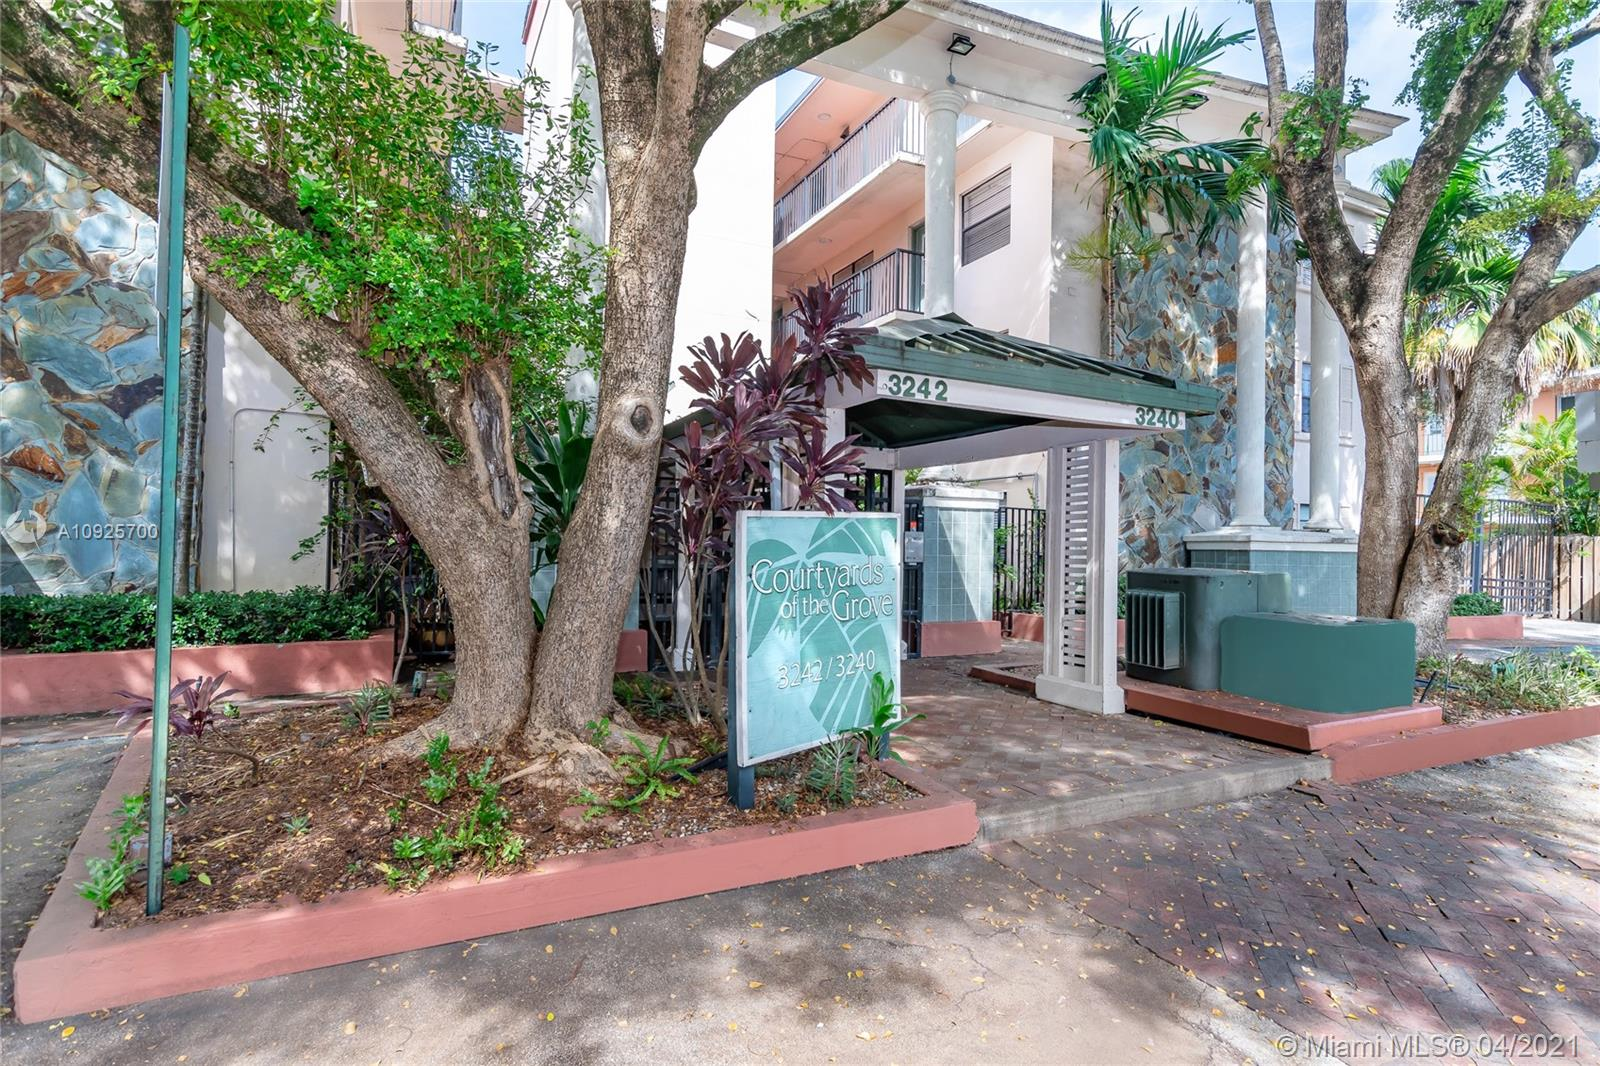 Fan favorite Courtyards of the Grove on Mary Street. Nicely remodeled 2 bedroom 1 bath, 3rd floor with balcony including a Washer and Dryer in the unit. Located in the heart of Center Coconut Grove.